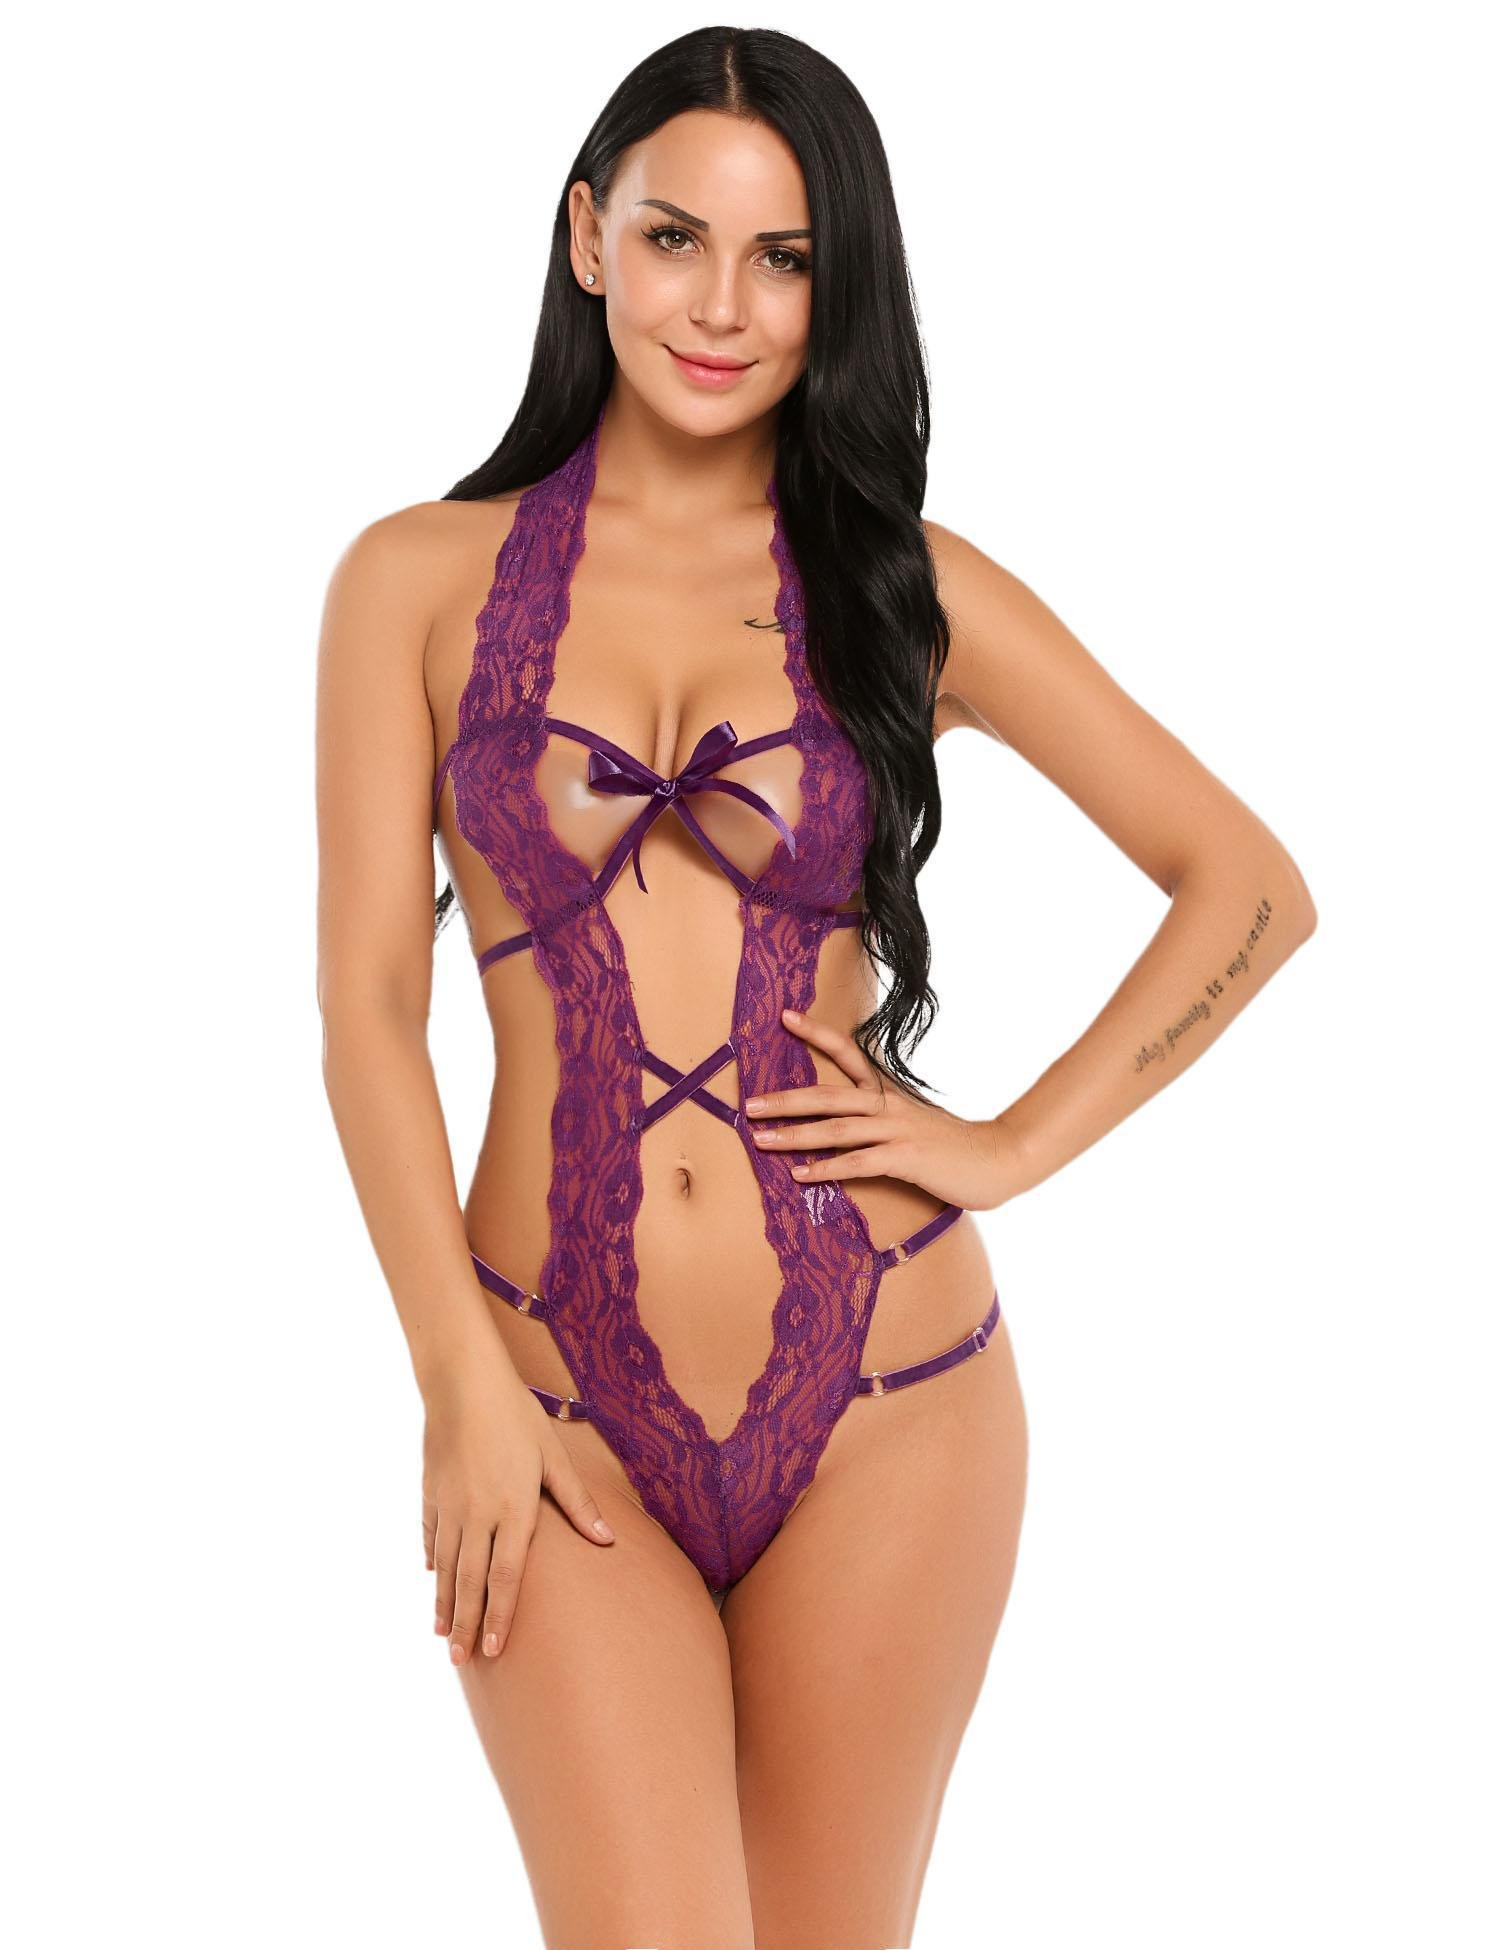 Dickin Sexy Lingerie for Women Deep V Halter One Piece Lace Bodysuit Babydoll